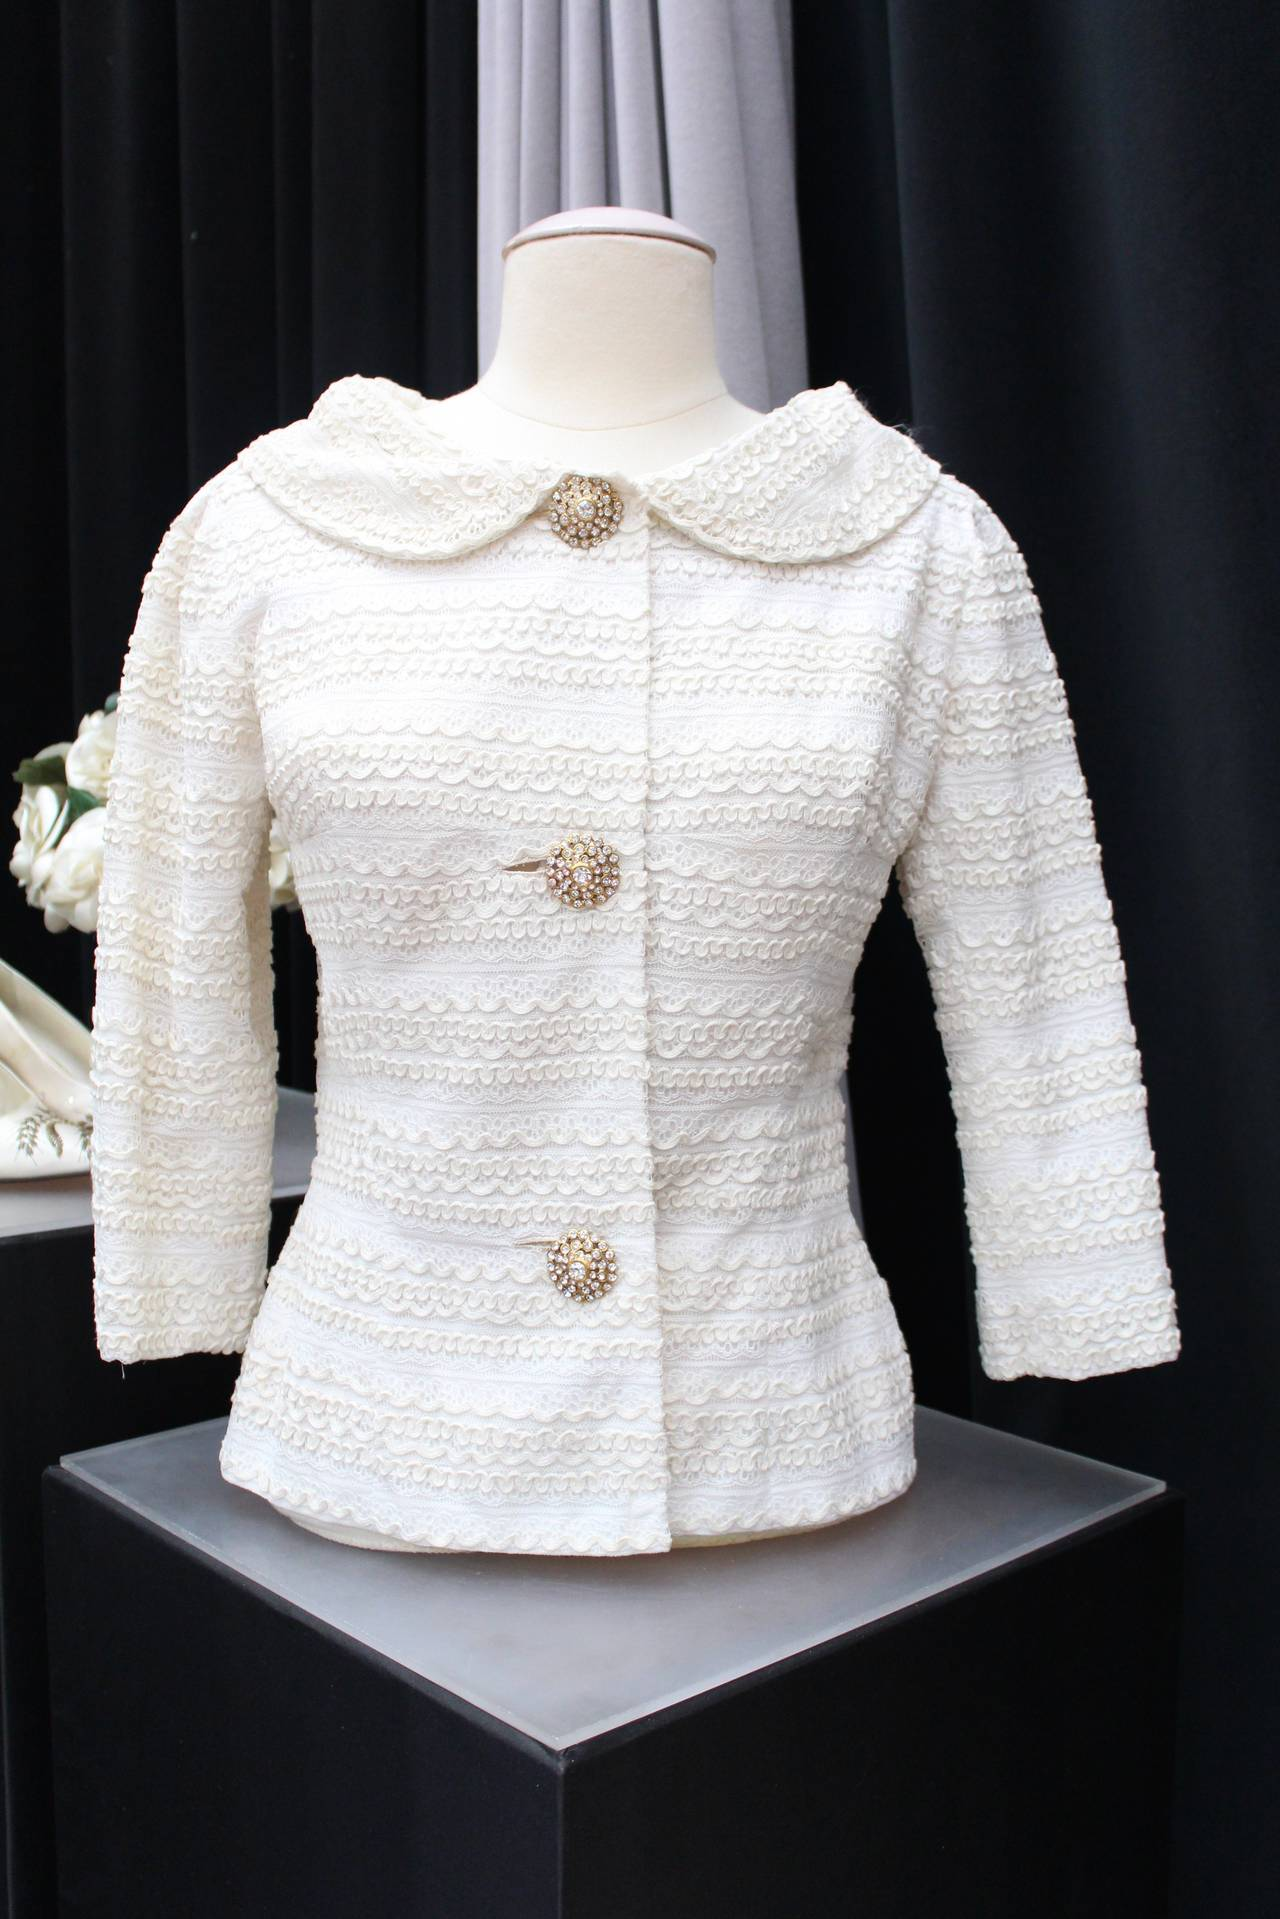 1961 Carven Haute Couture White Lace Dress and Jacket Ensemble For Sale 3